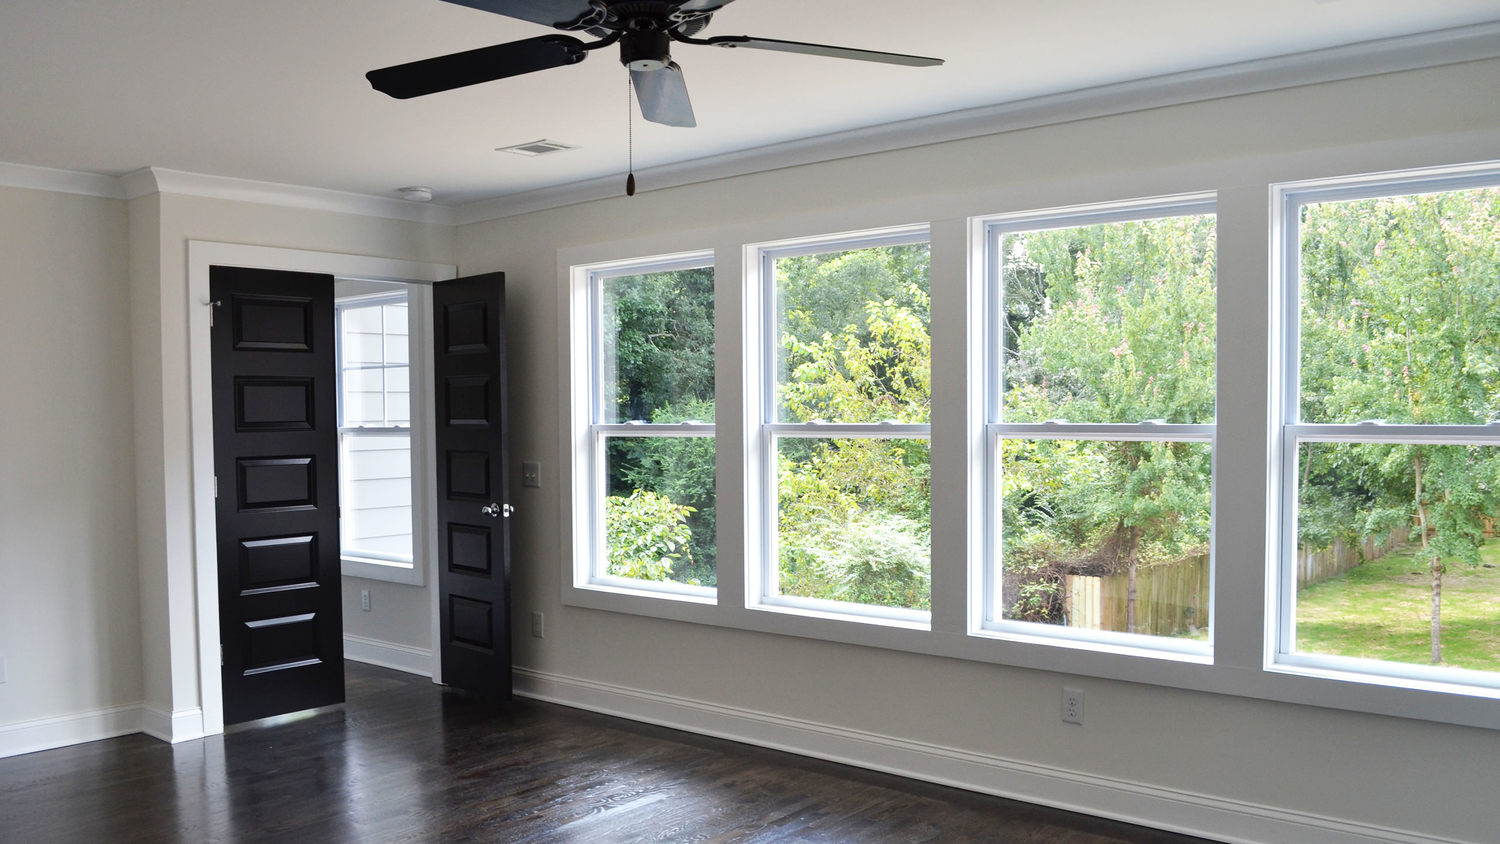 Window Installer in Mamaroneck, NY